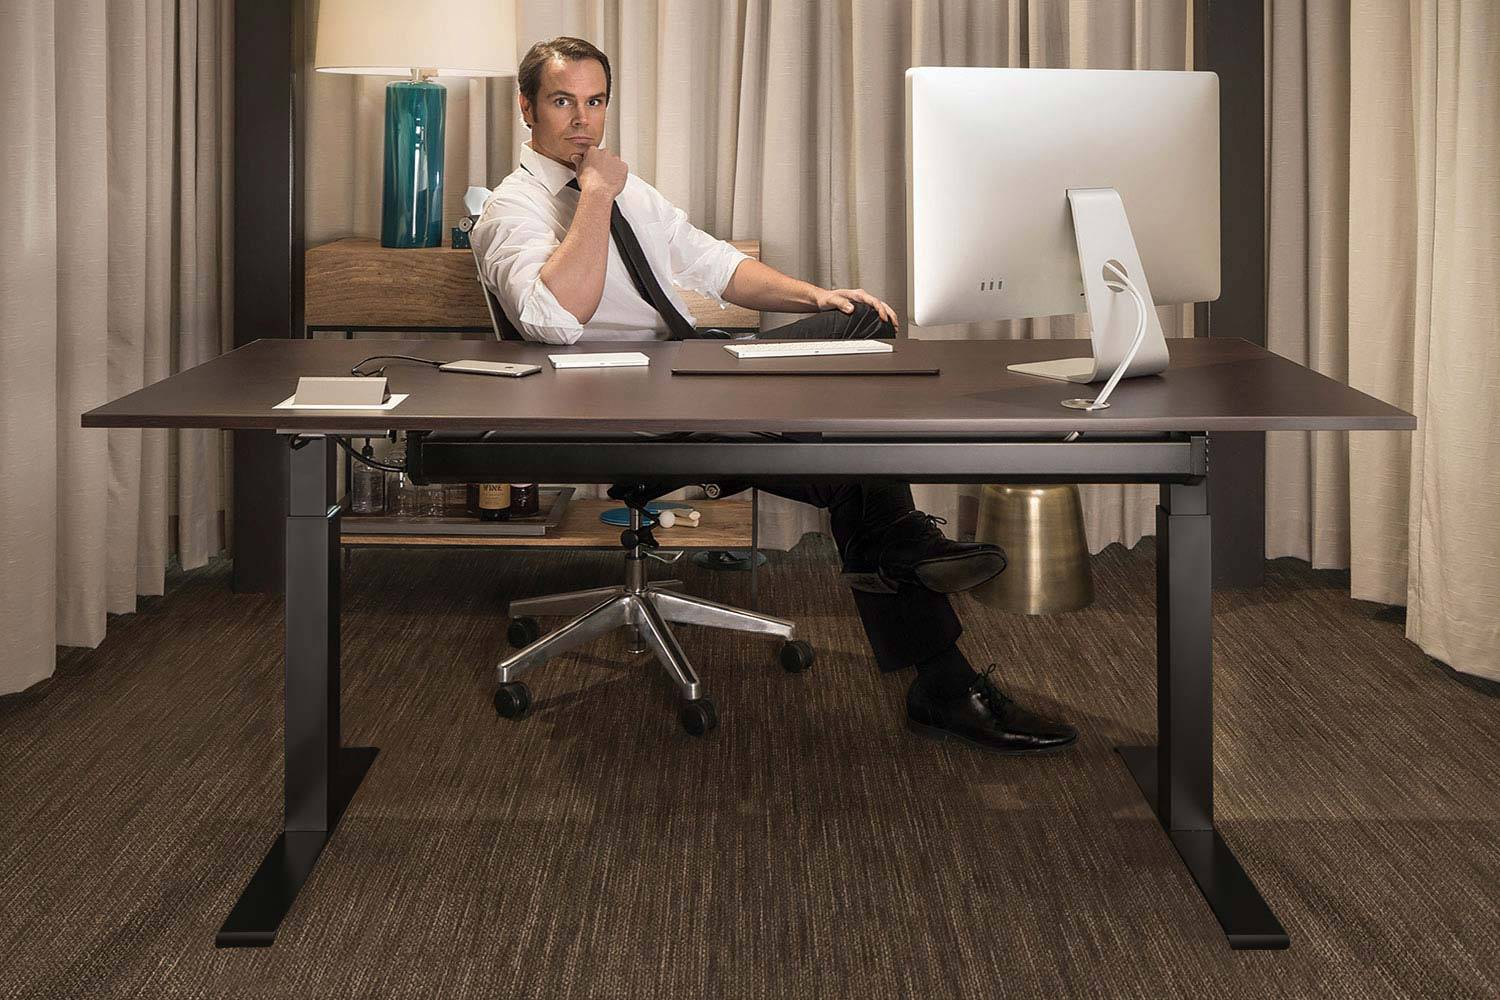 MultiTable Mod-E2 Electric Height Adjustable Table Standing Office Desk